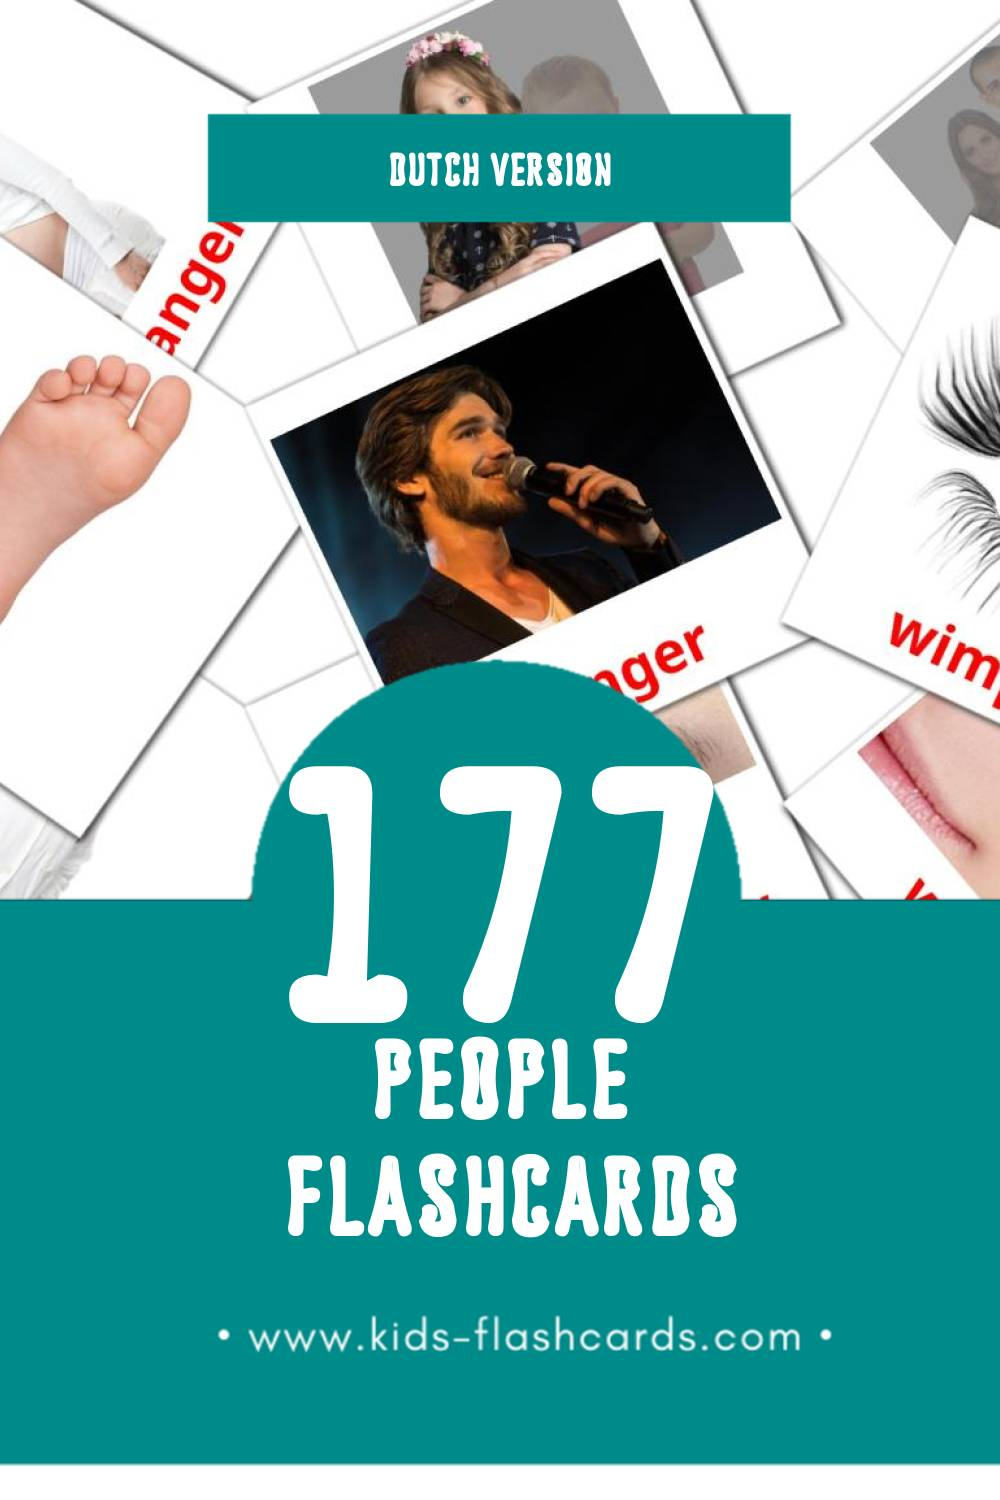 Visual Mensen Flashcards for Toddlers (58 cards in Dutch)